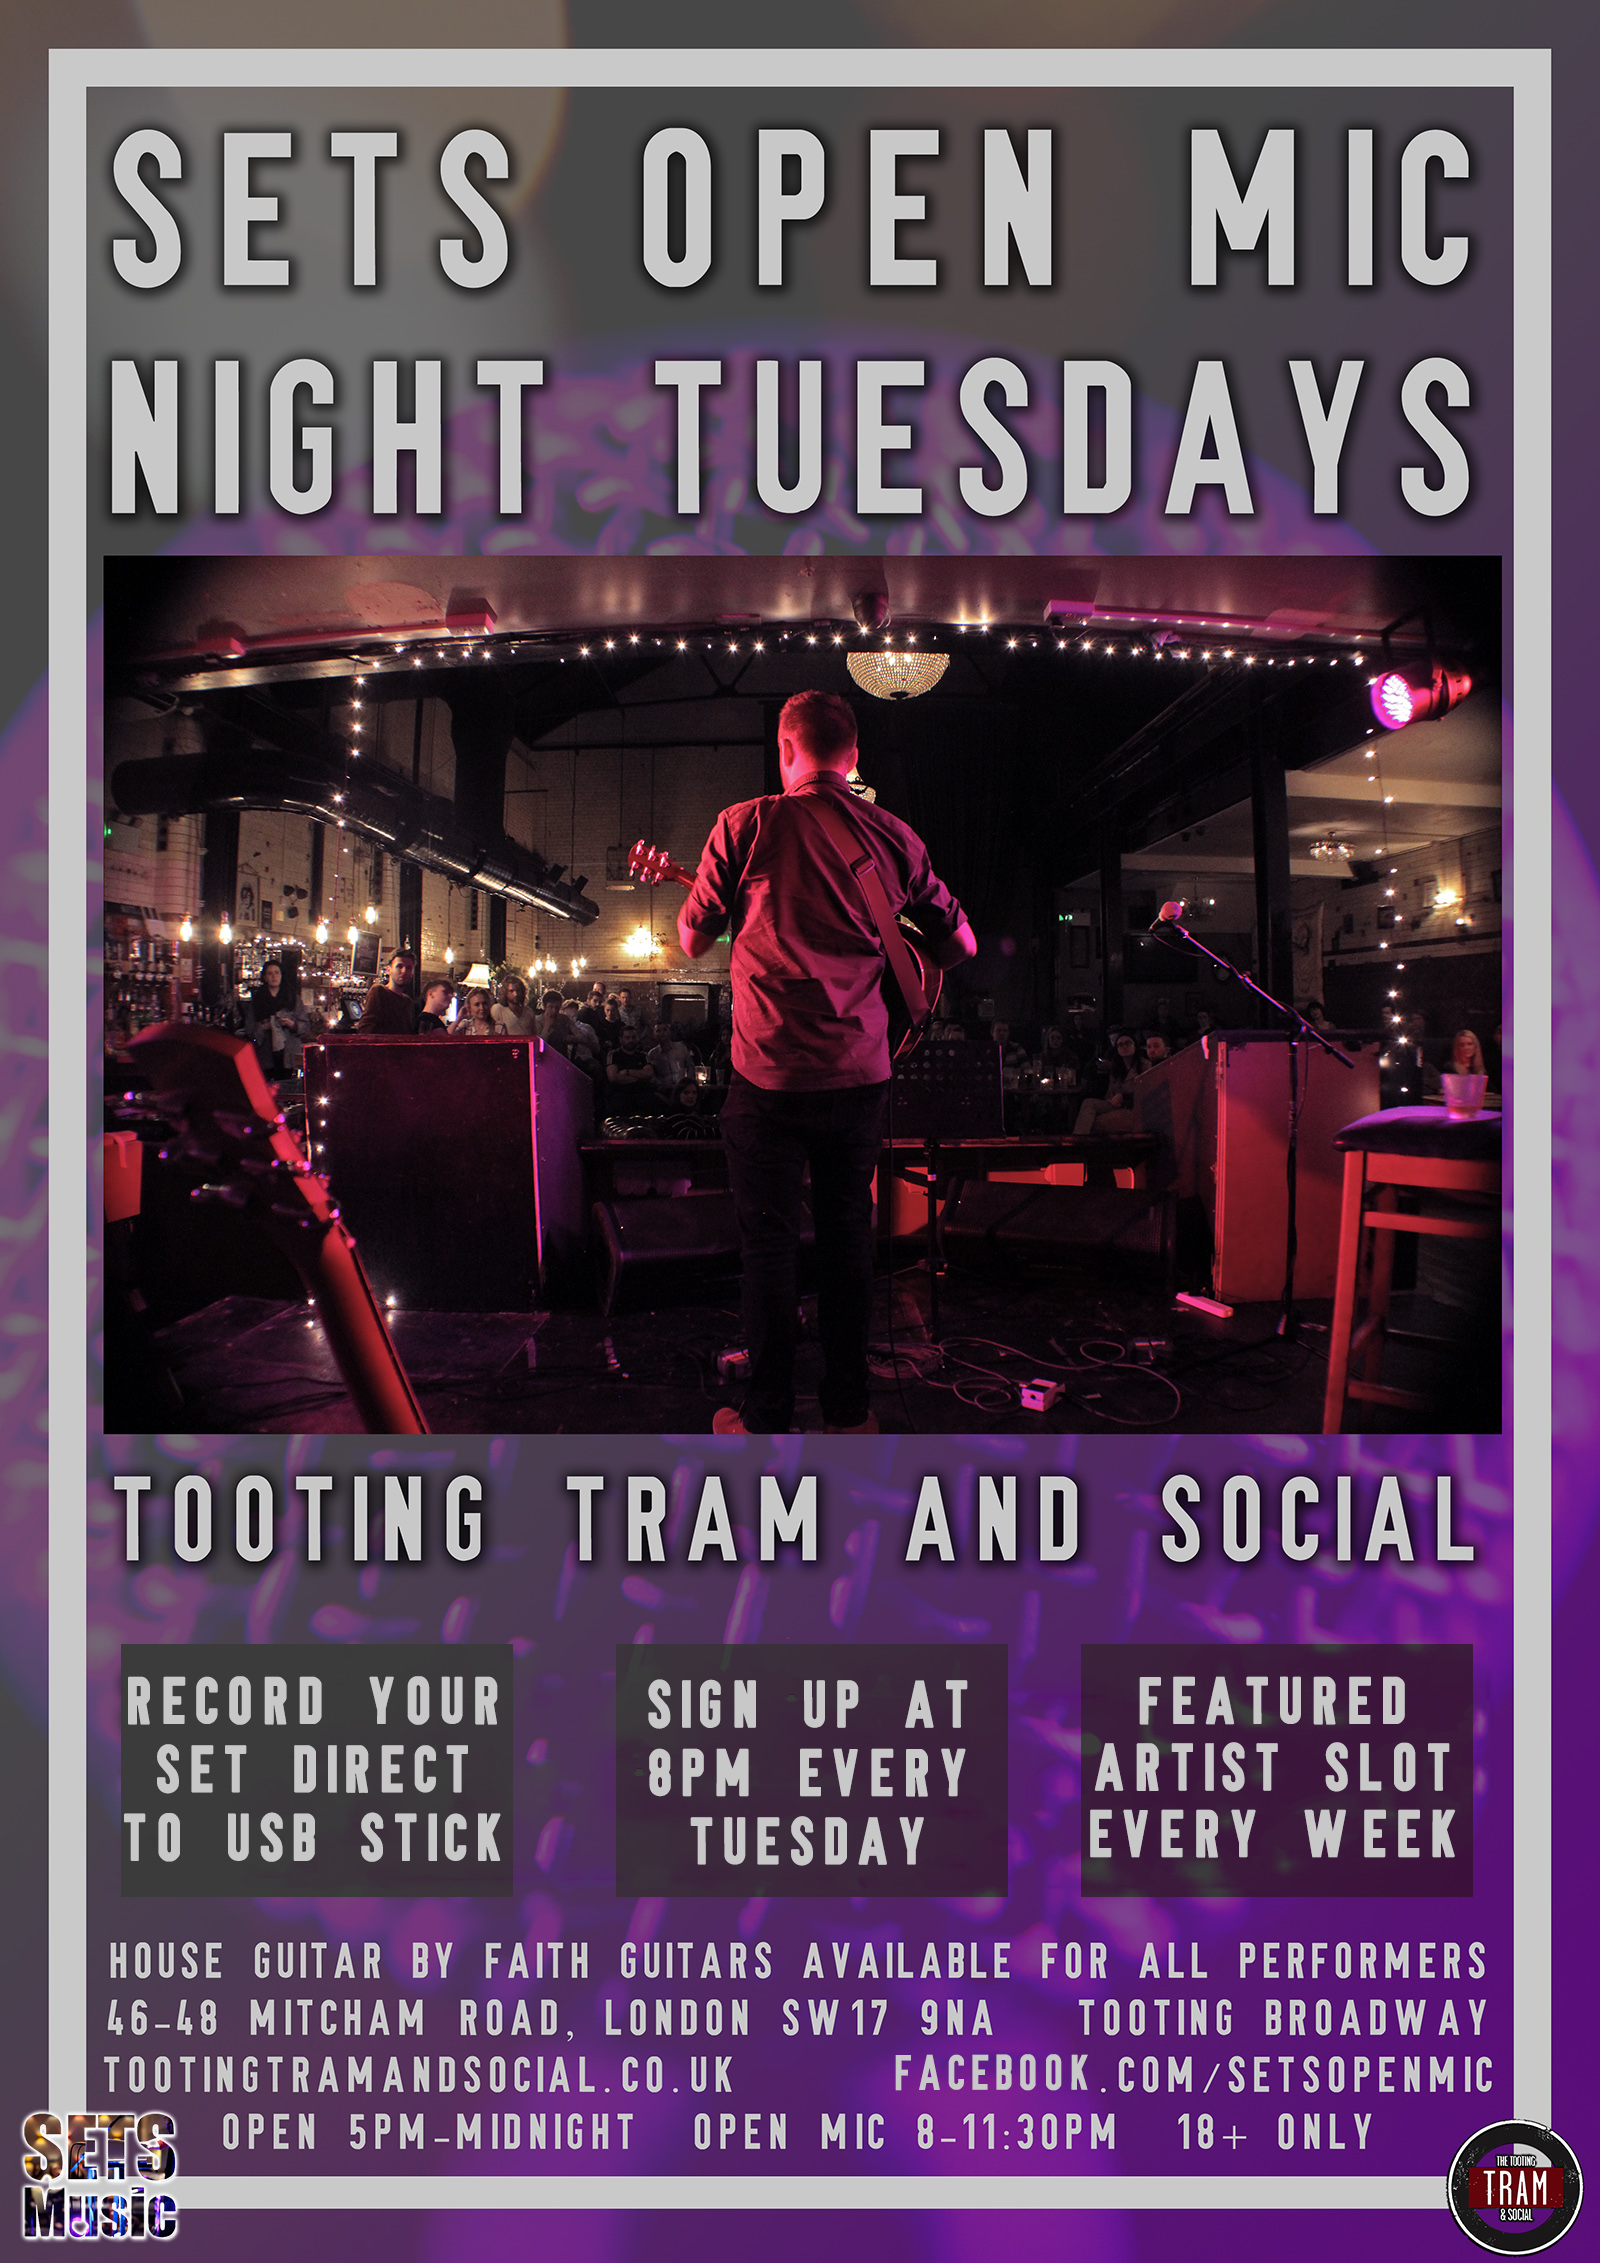 Open Mic Night: Every Tuesday